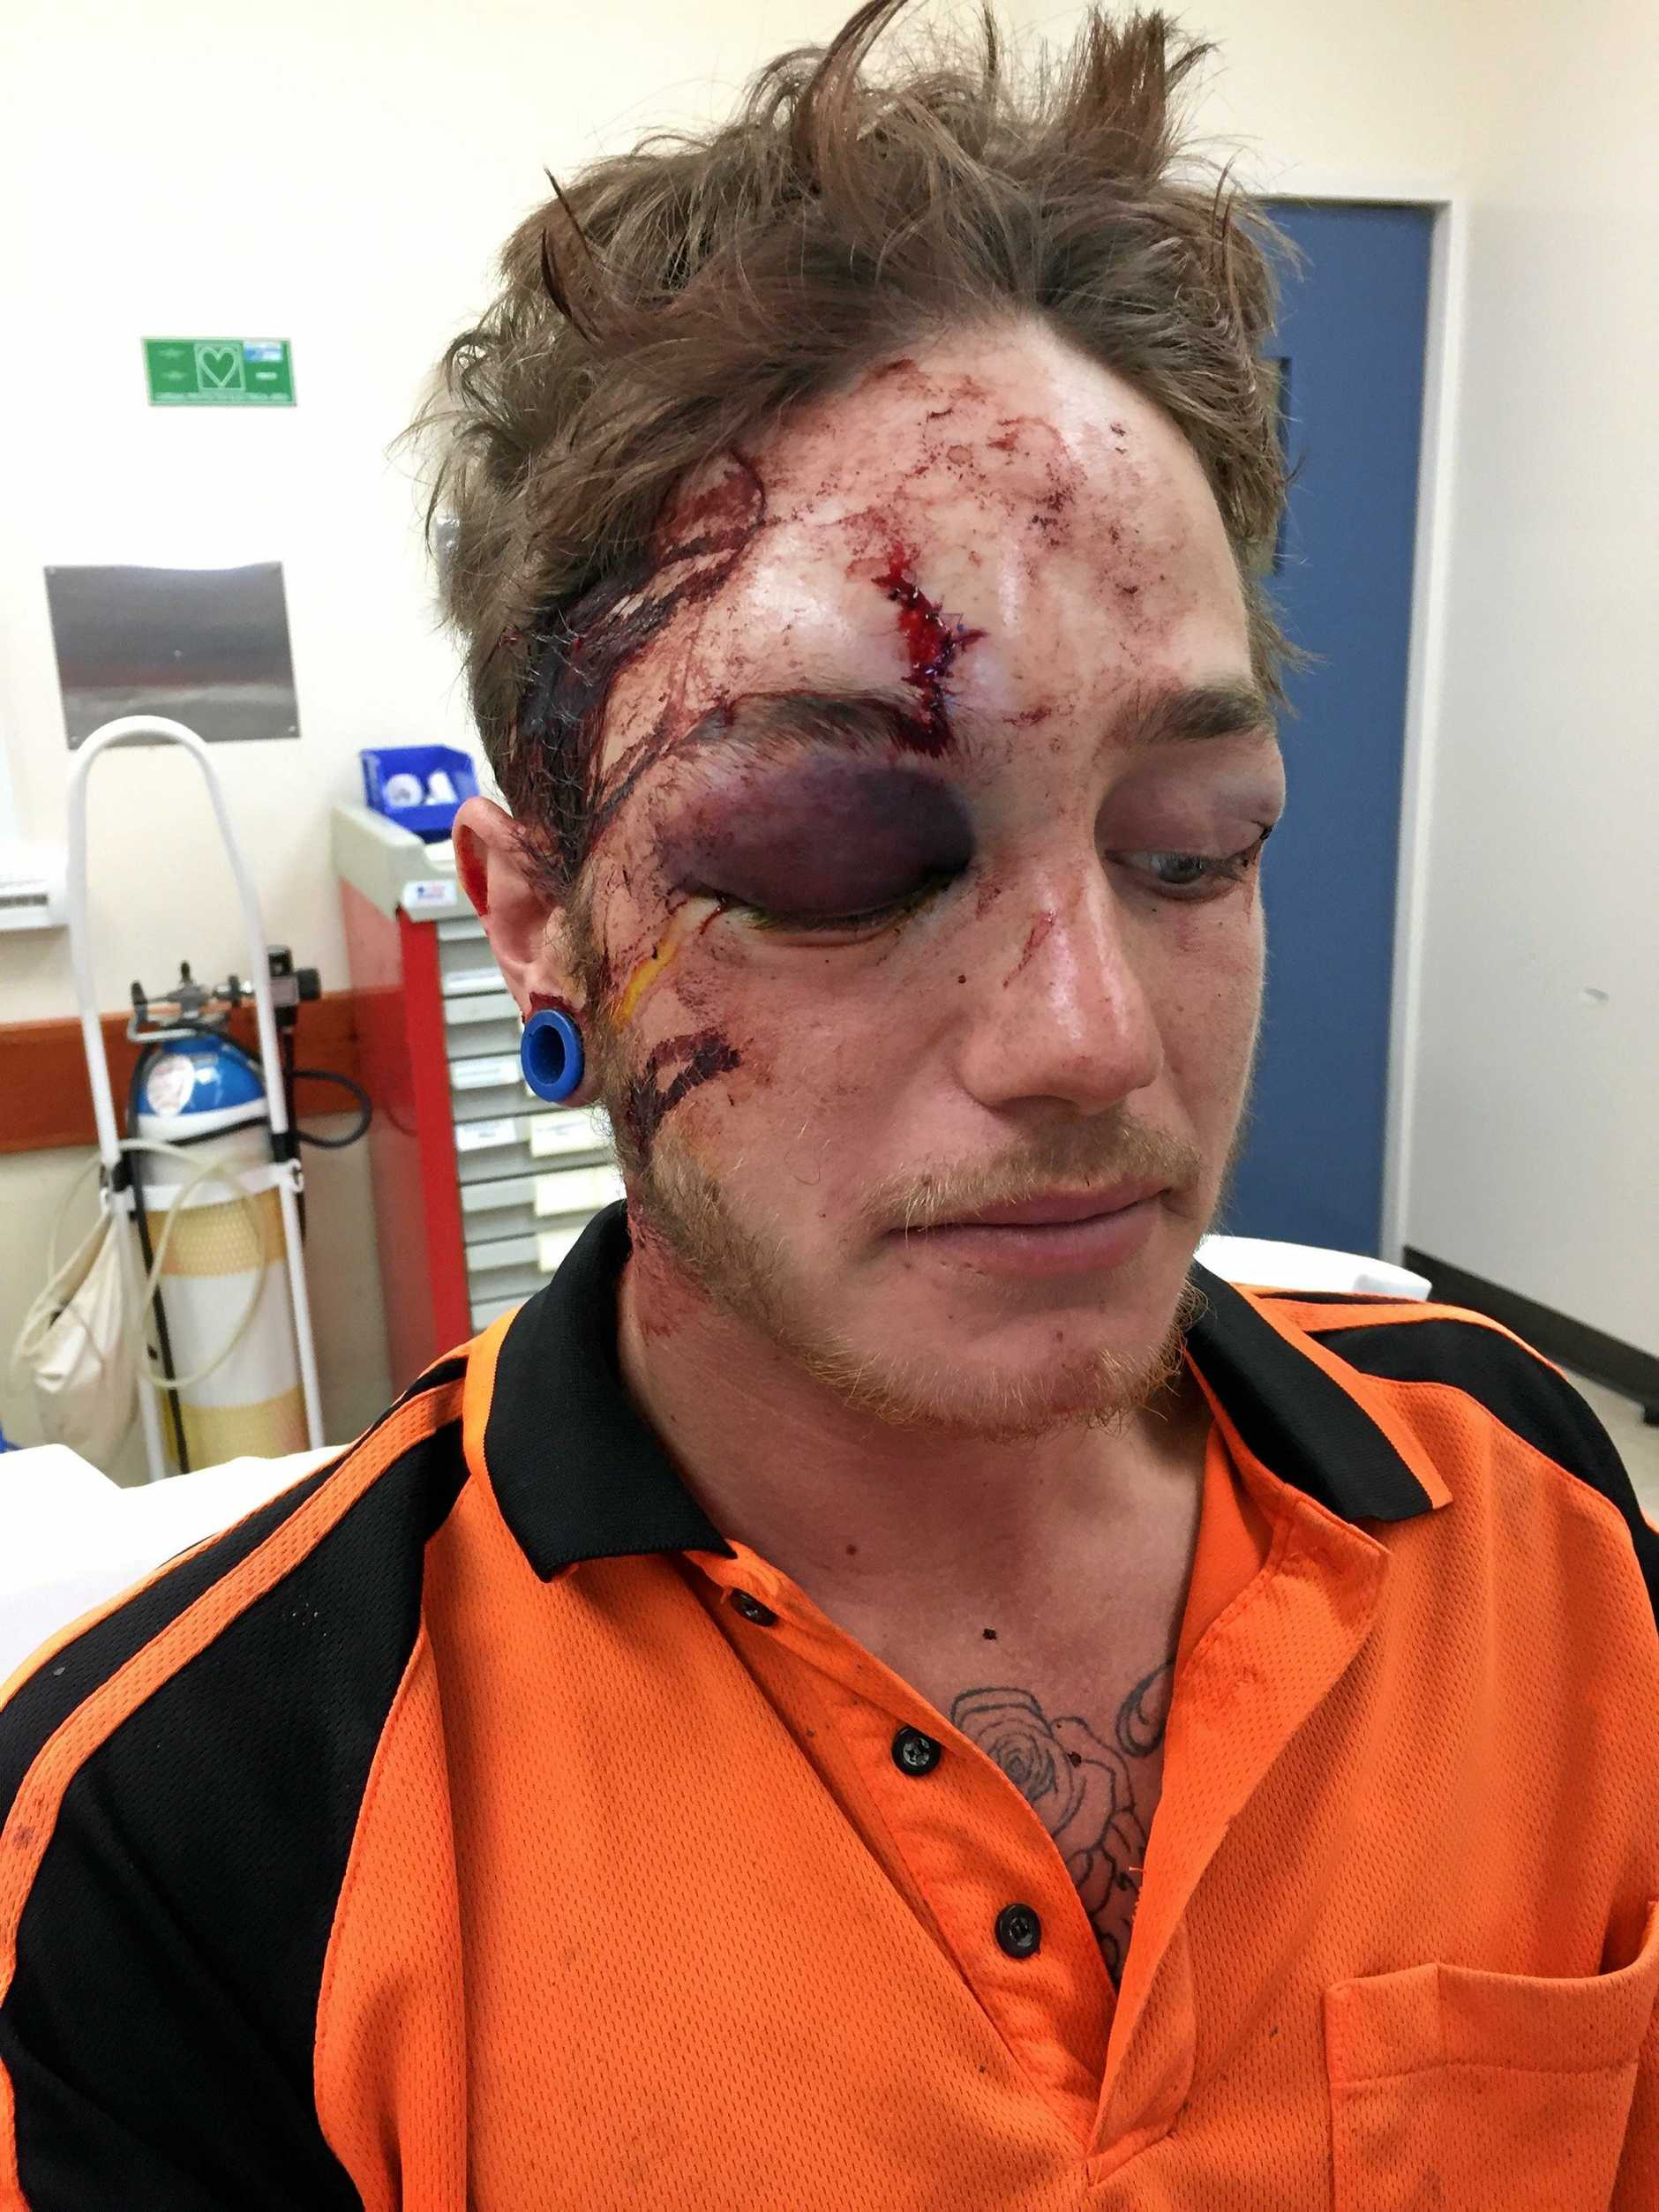 Ashley Francis looking worse for wear after a workplace accident left him with a fractured skull and severe concussion.